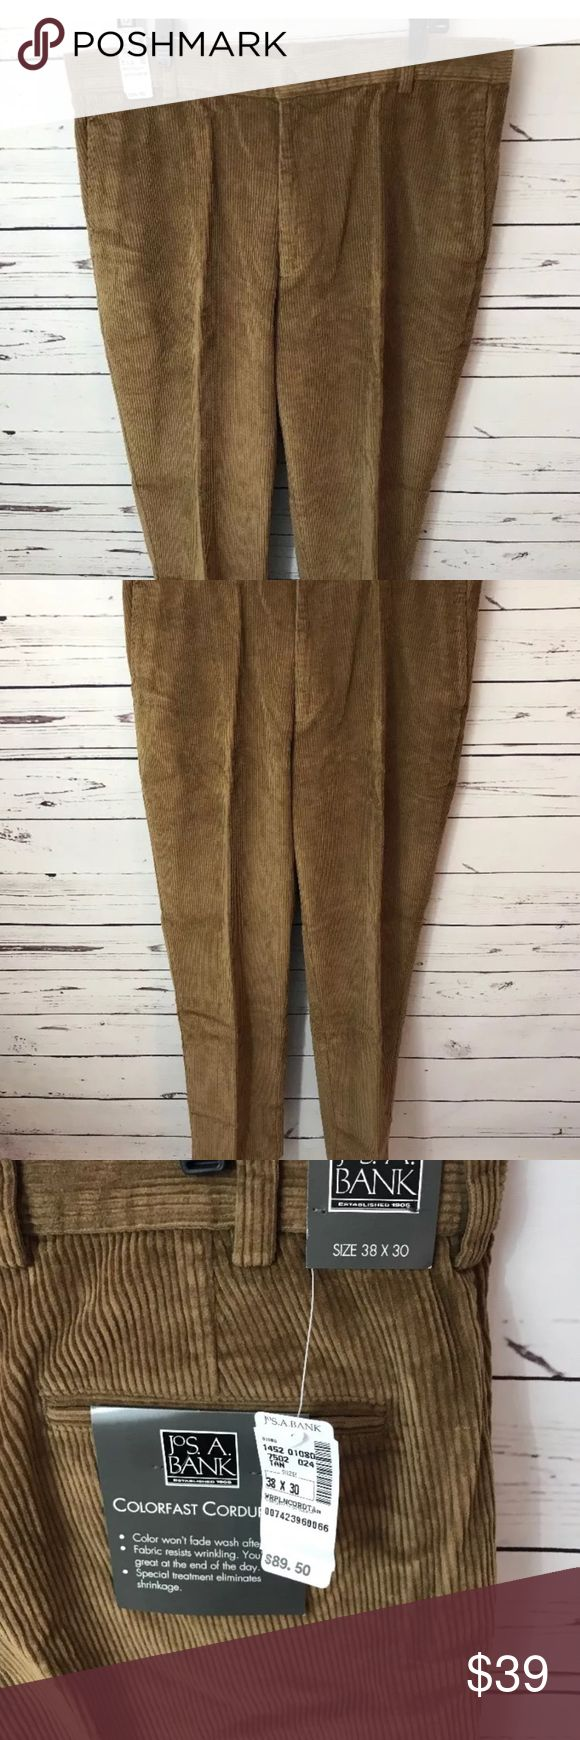 JoS.A. BANK NEW Tan Colorfast Corduroys 38WX30L This purchase is for a new pair of men's JoS.A. BANK Brand New With Tags The Size is 38X30 The Color is Tan/Brown JoS.BANK Pants Corduroy